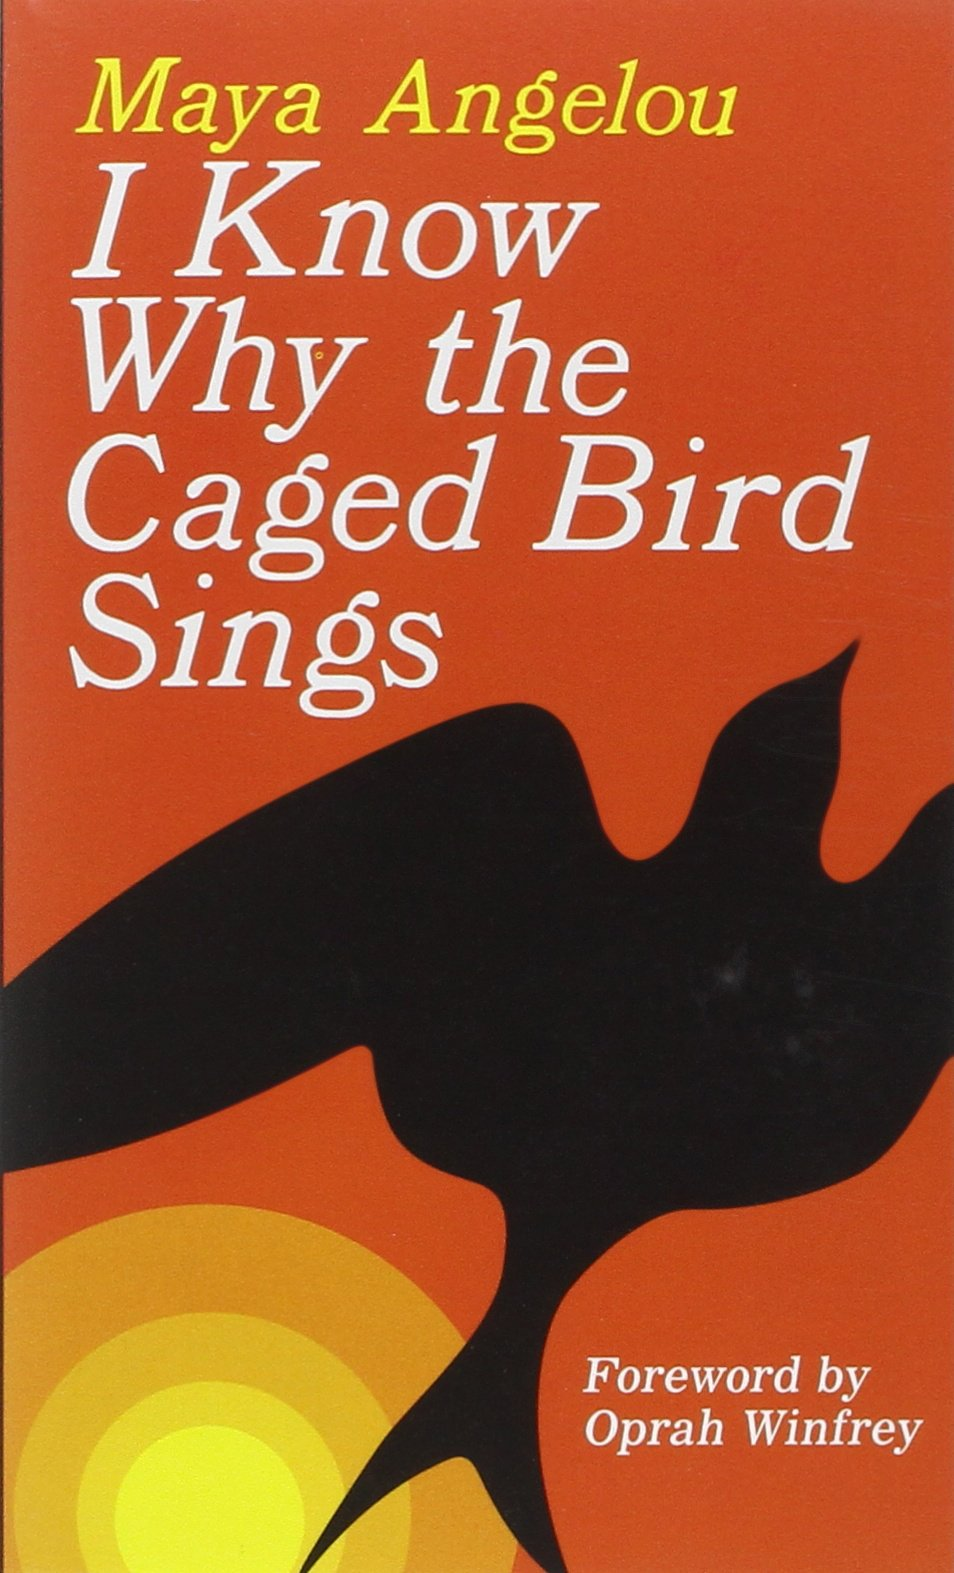 Image result for i know why the caged bird sings book cover